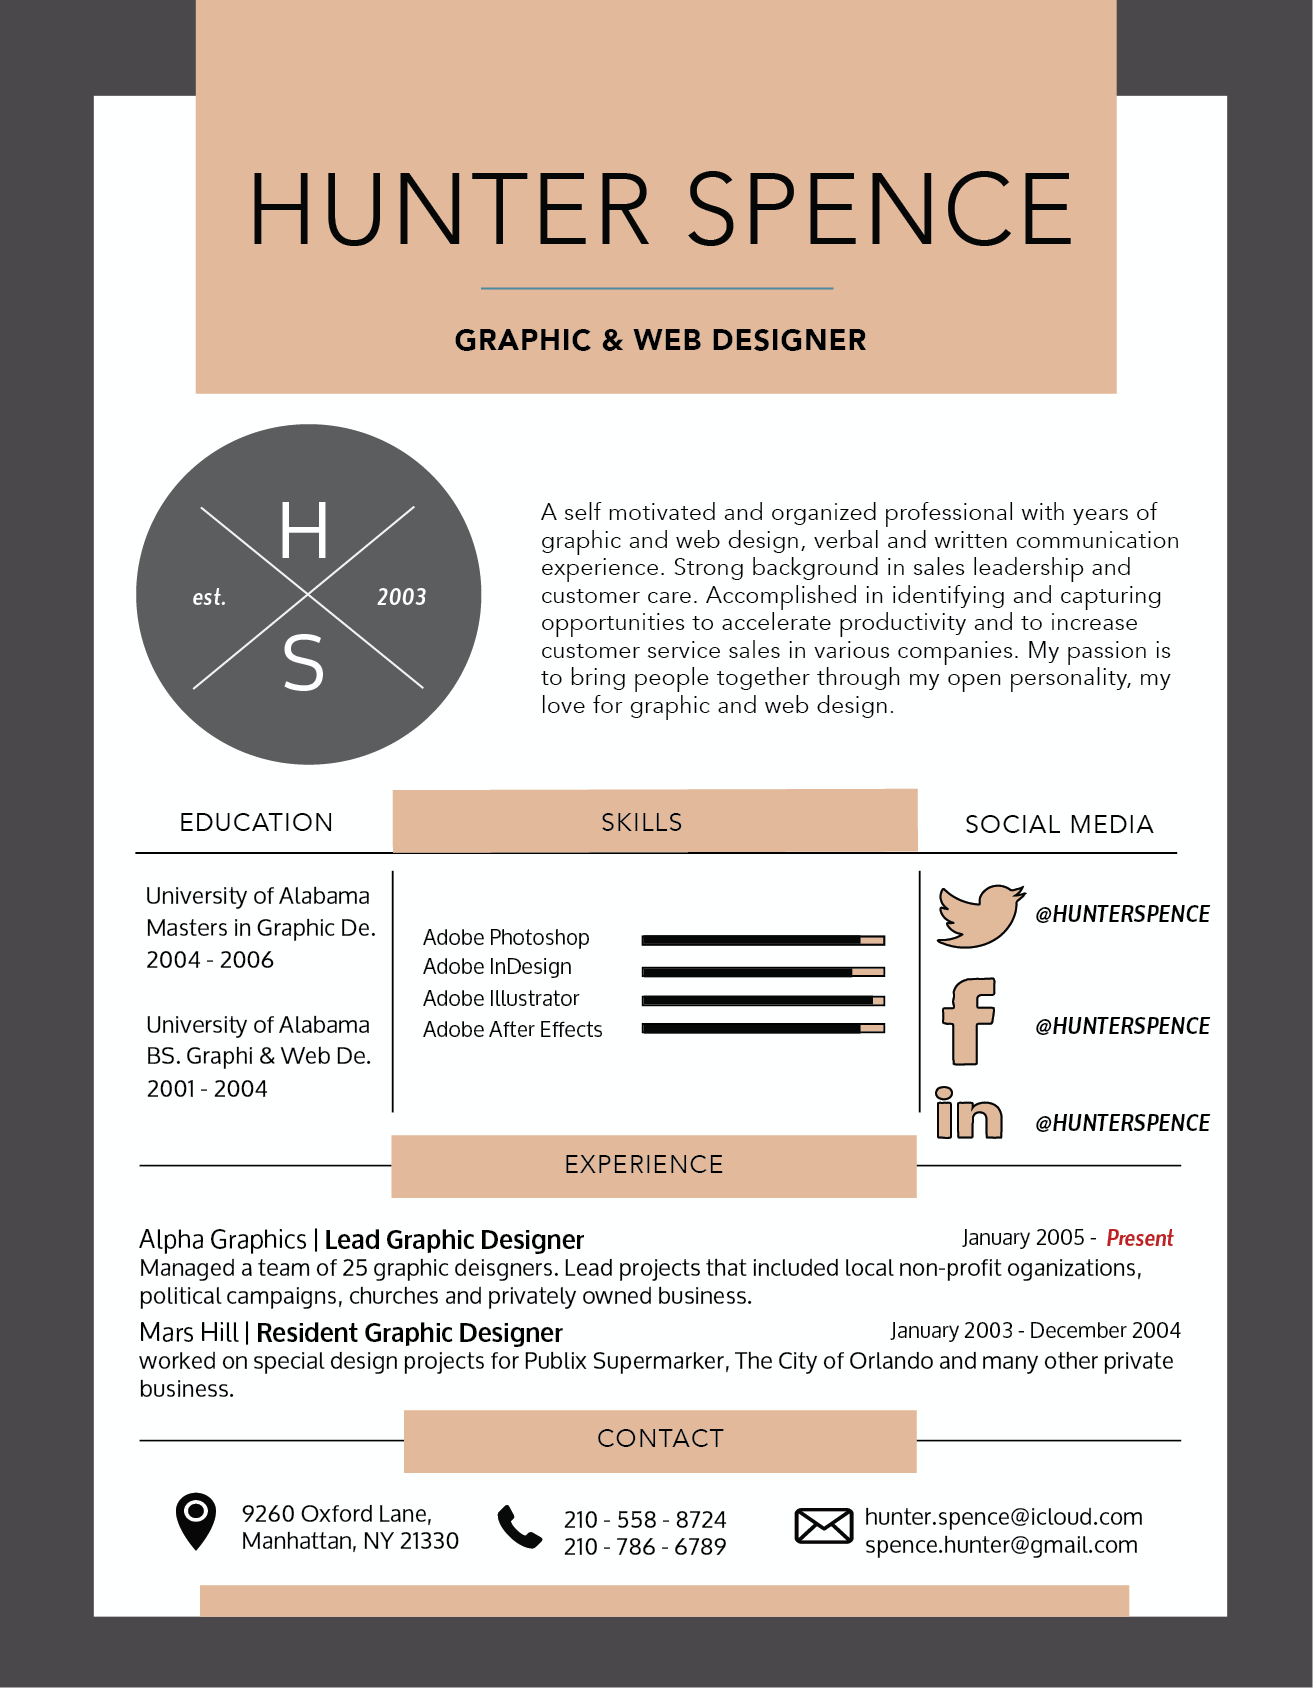 design and create a professional resume, cover letter and cv